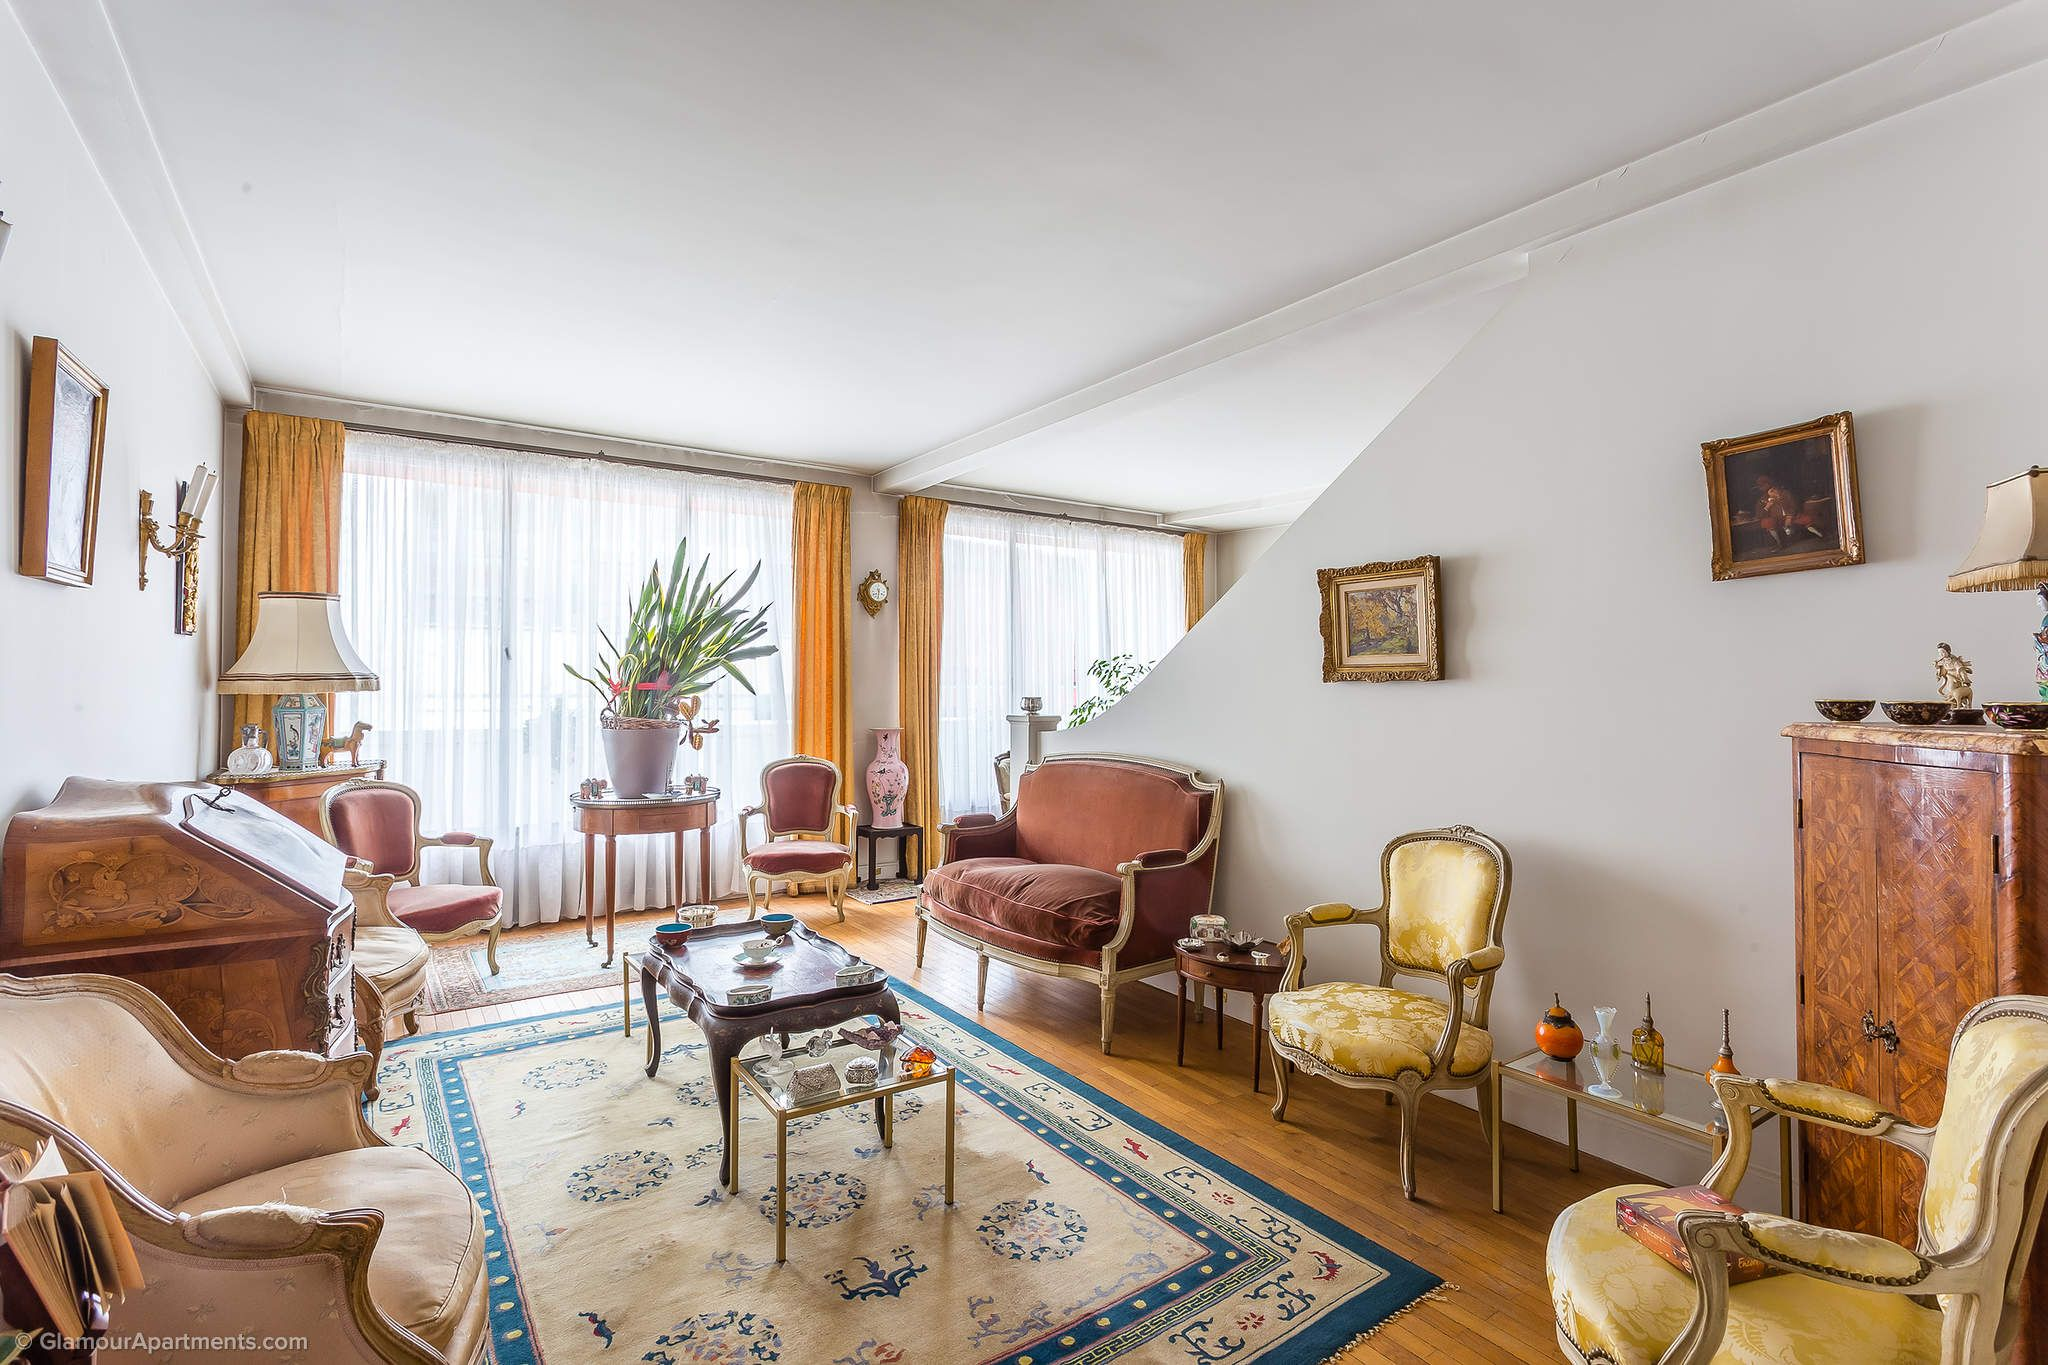 Beautiful, very pleasant, spacious apartment for sale in the 7th district of Paris. Wonderful flat with excellent panoramic views of the French capital. The property for true connoisseurs of art. https://www.glamourapartments.com/real-estate/for-sale/gourmet